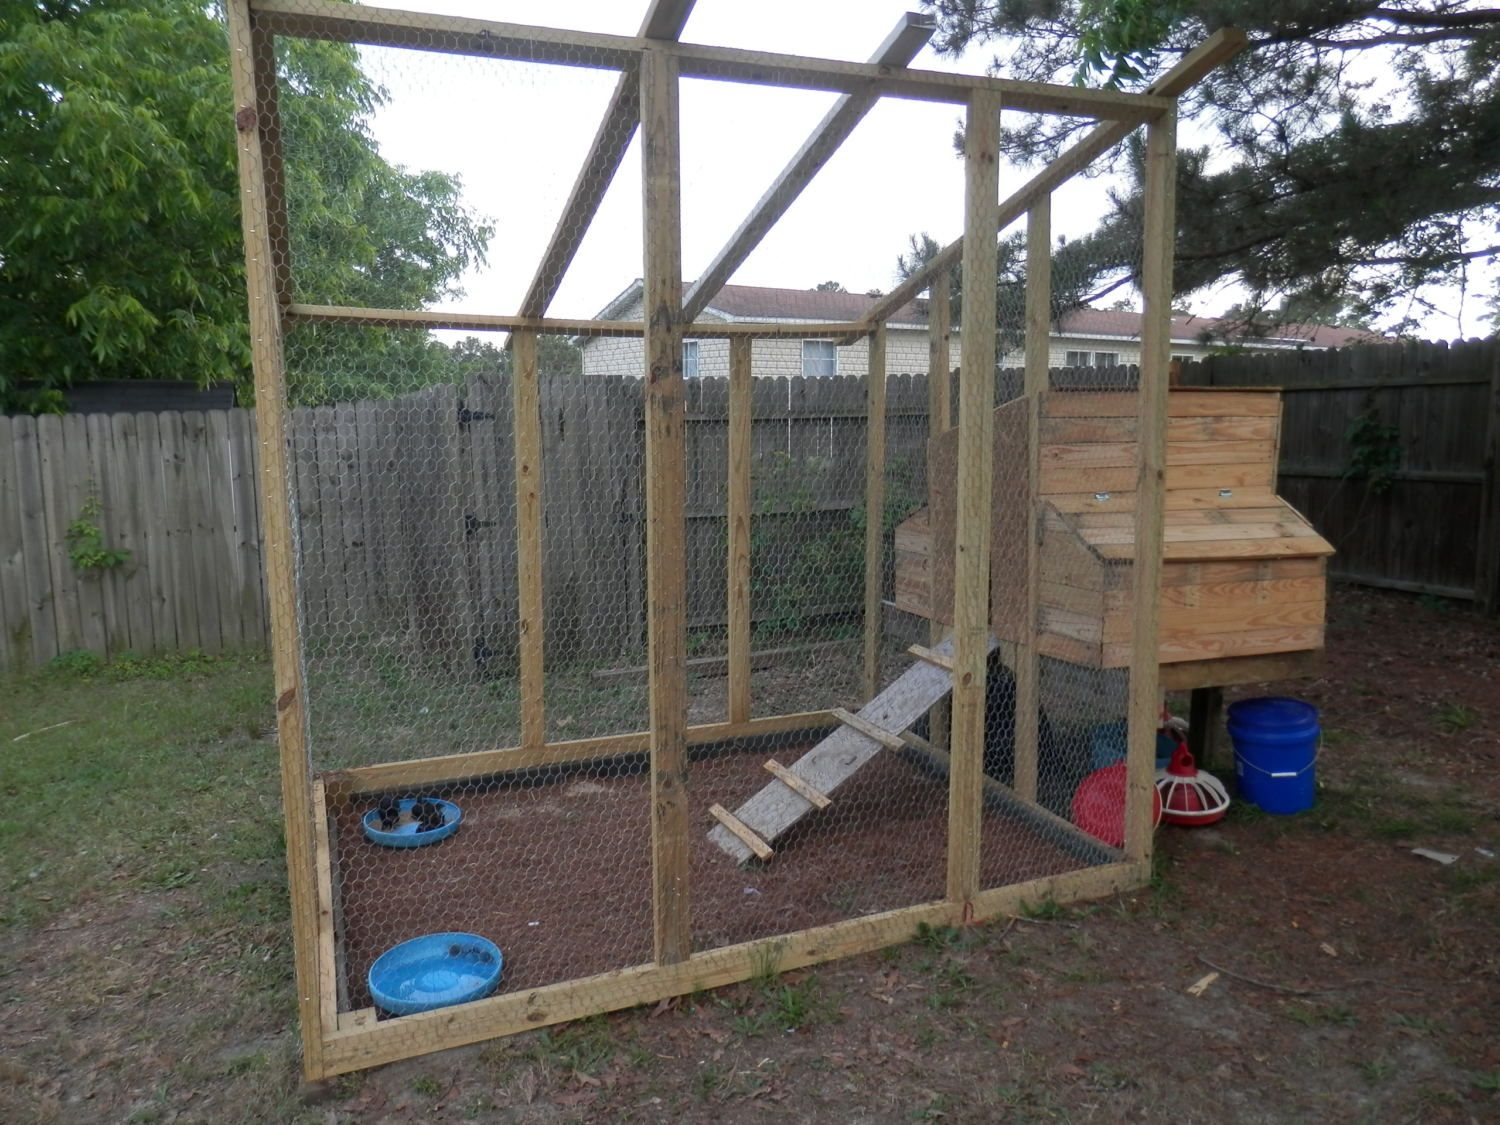 The chicken coop my husband and I built before we installed the tin roof.